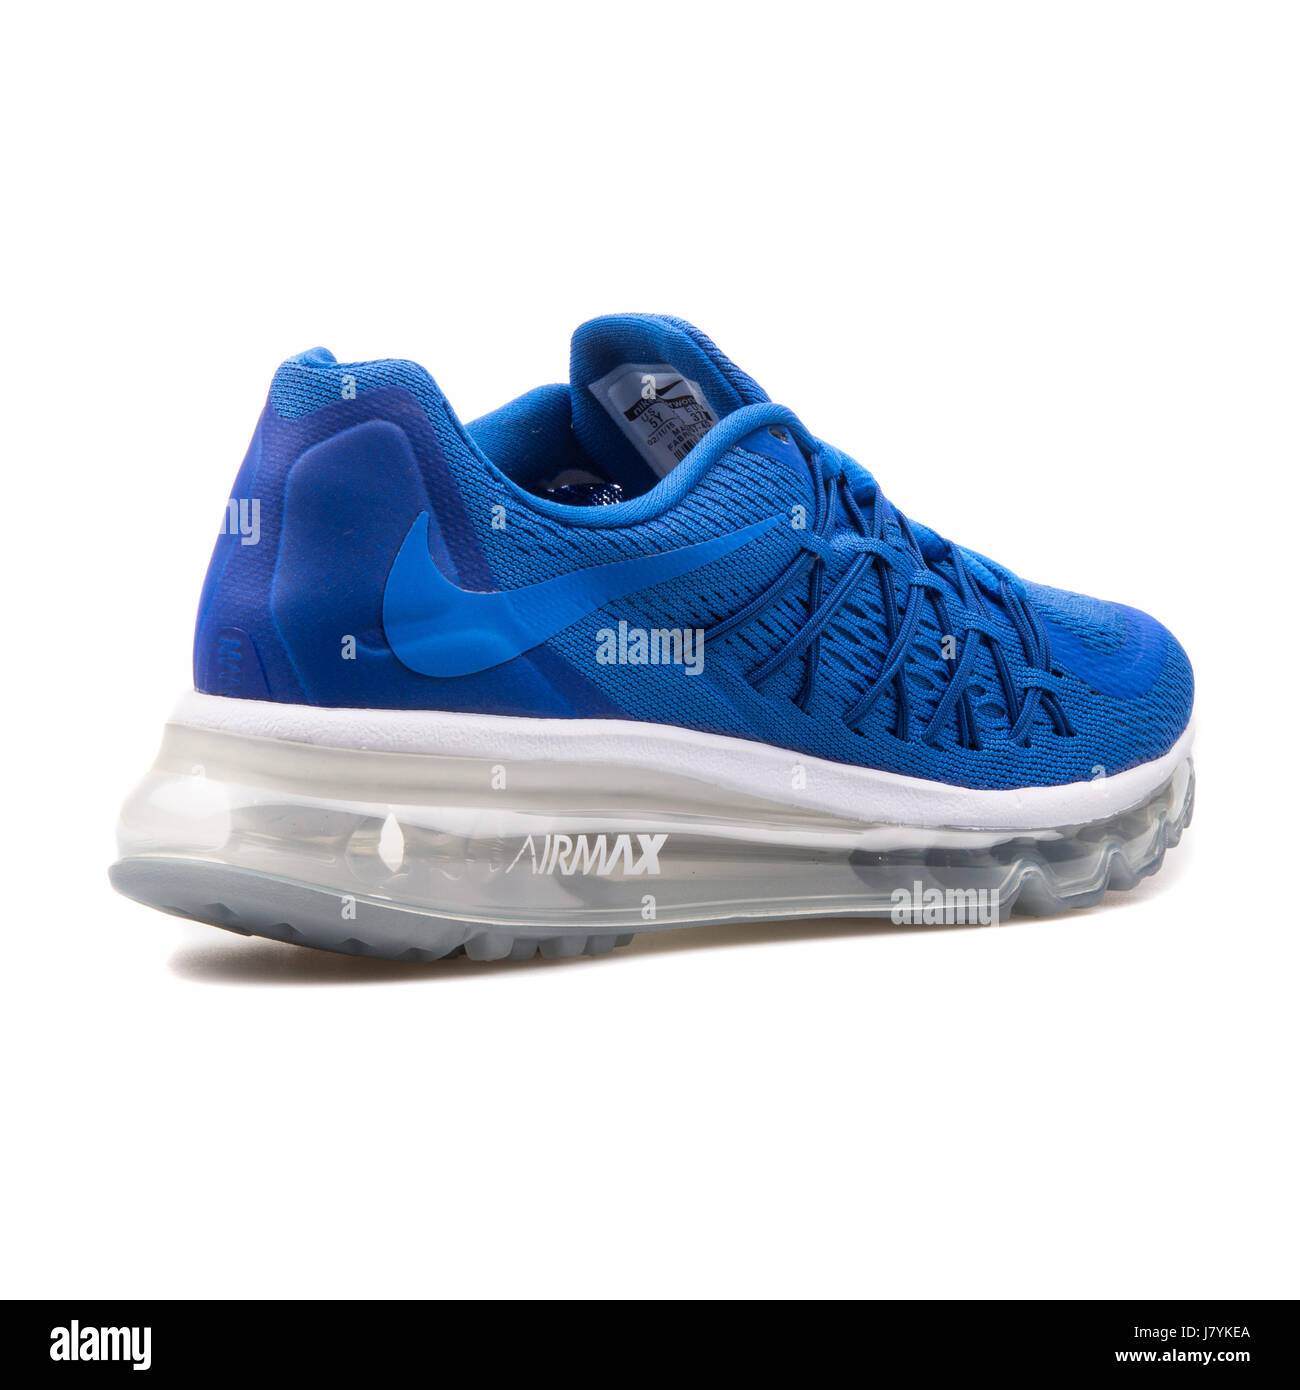 new style e16bd 72618 Nike Air Max 2015 (GS) Youth Blue Running Sneakers - 705457-402